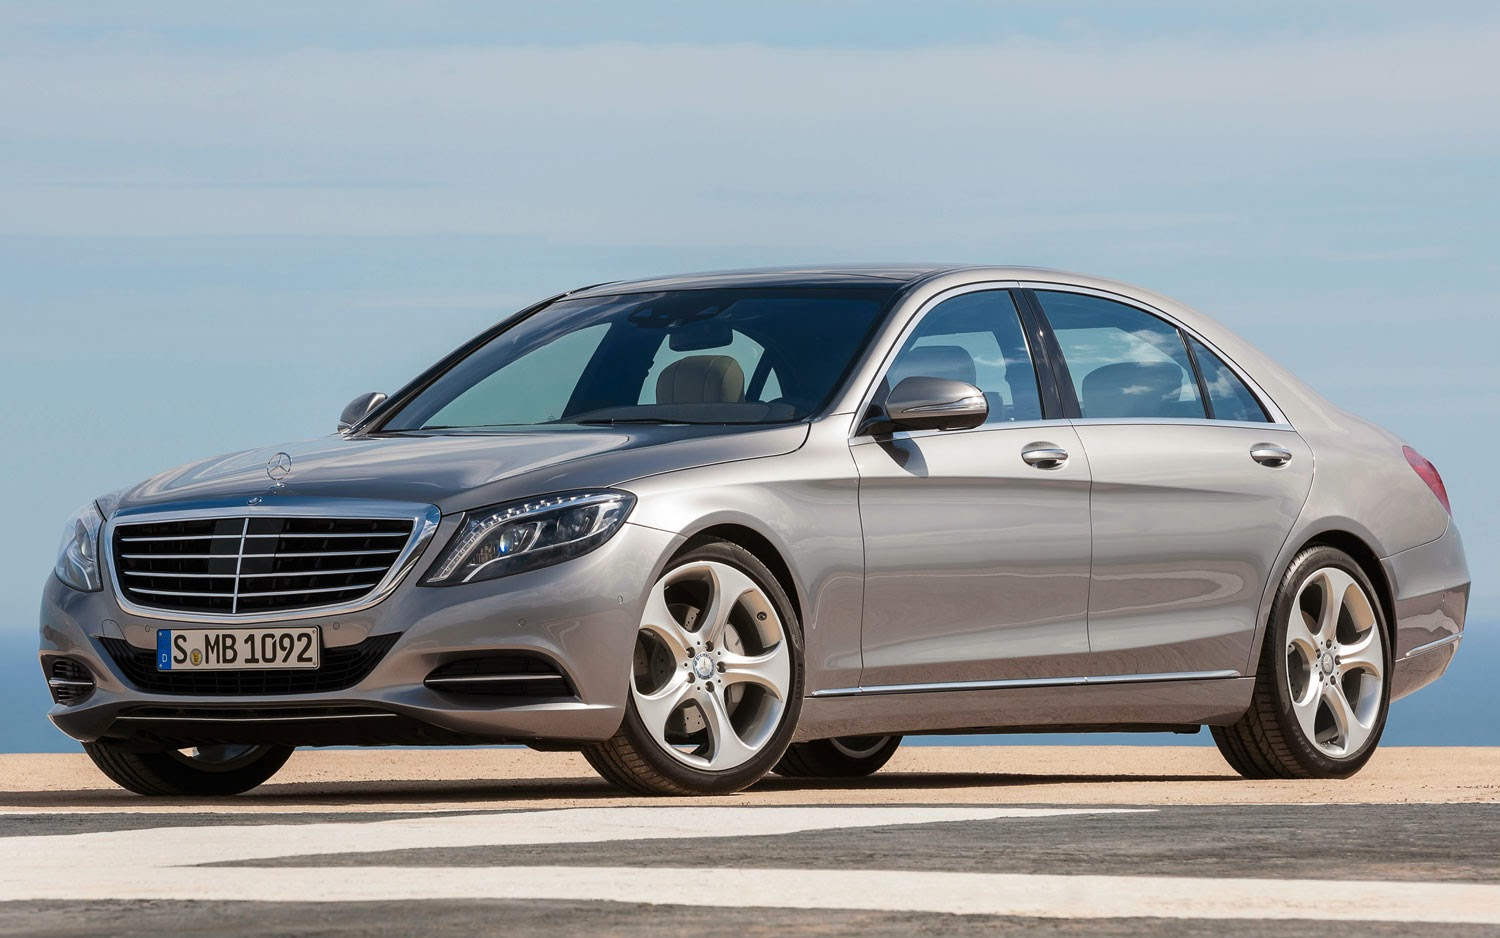 2014 mercedes benz s class review price and design auto review 2014